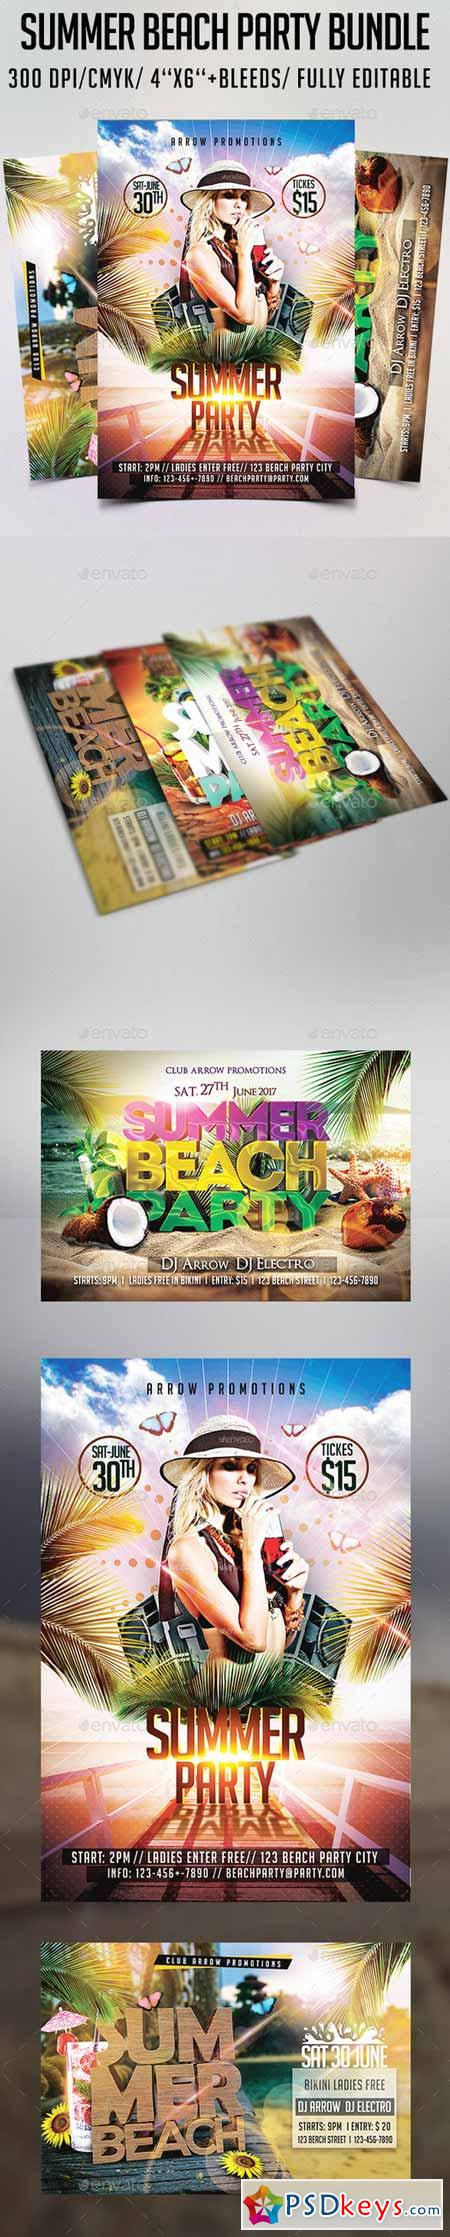 Summer Beach Party Flyer Bundle 12253467